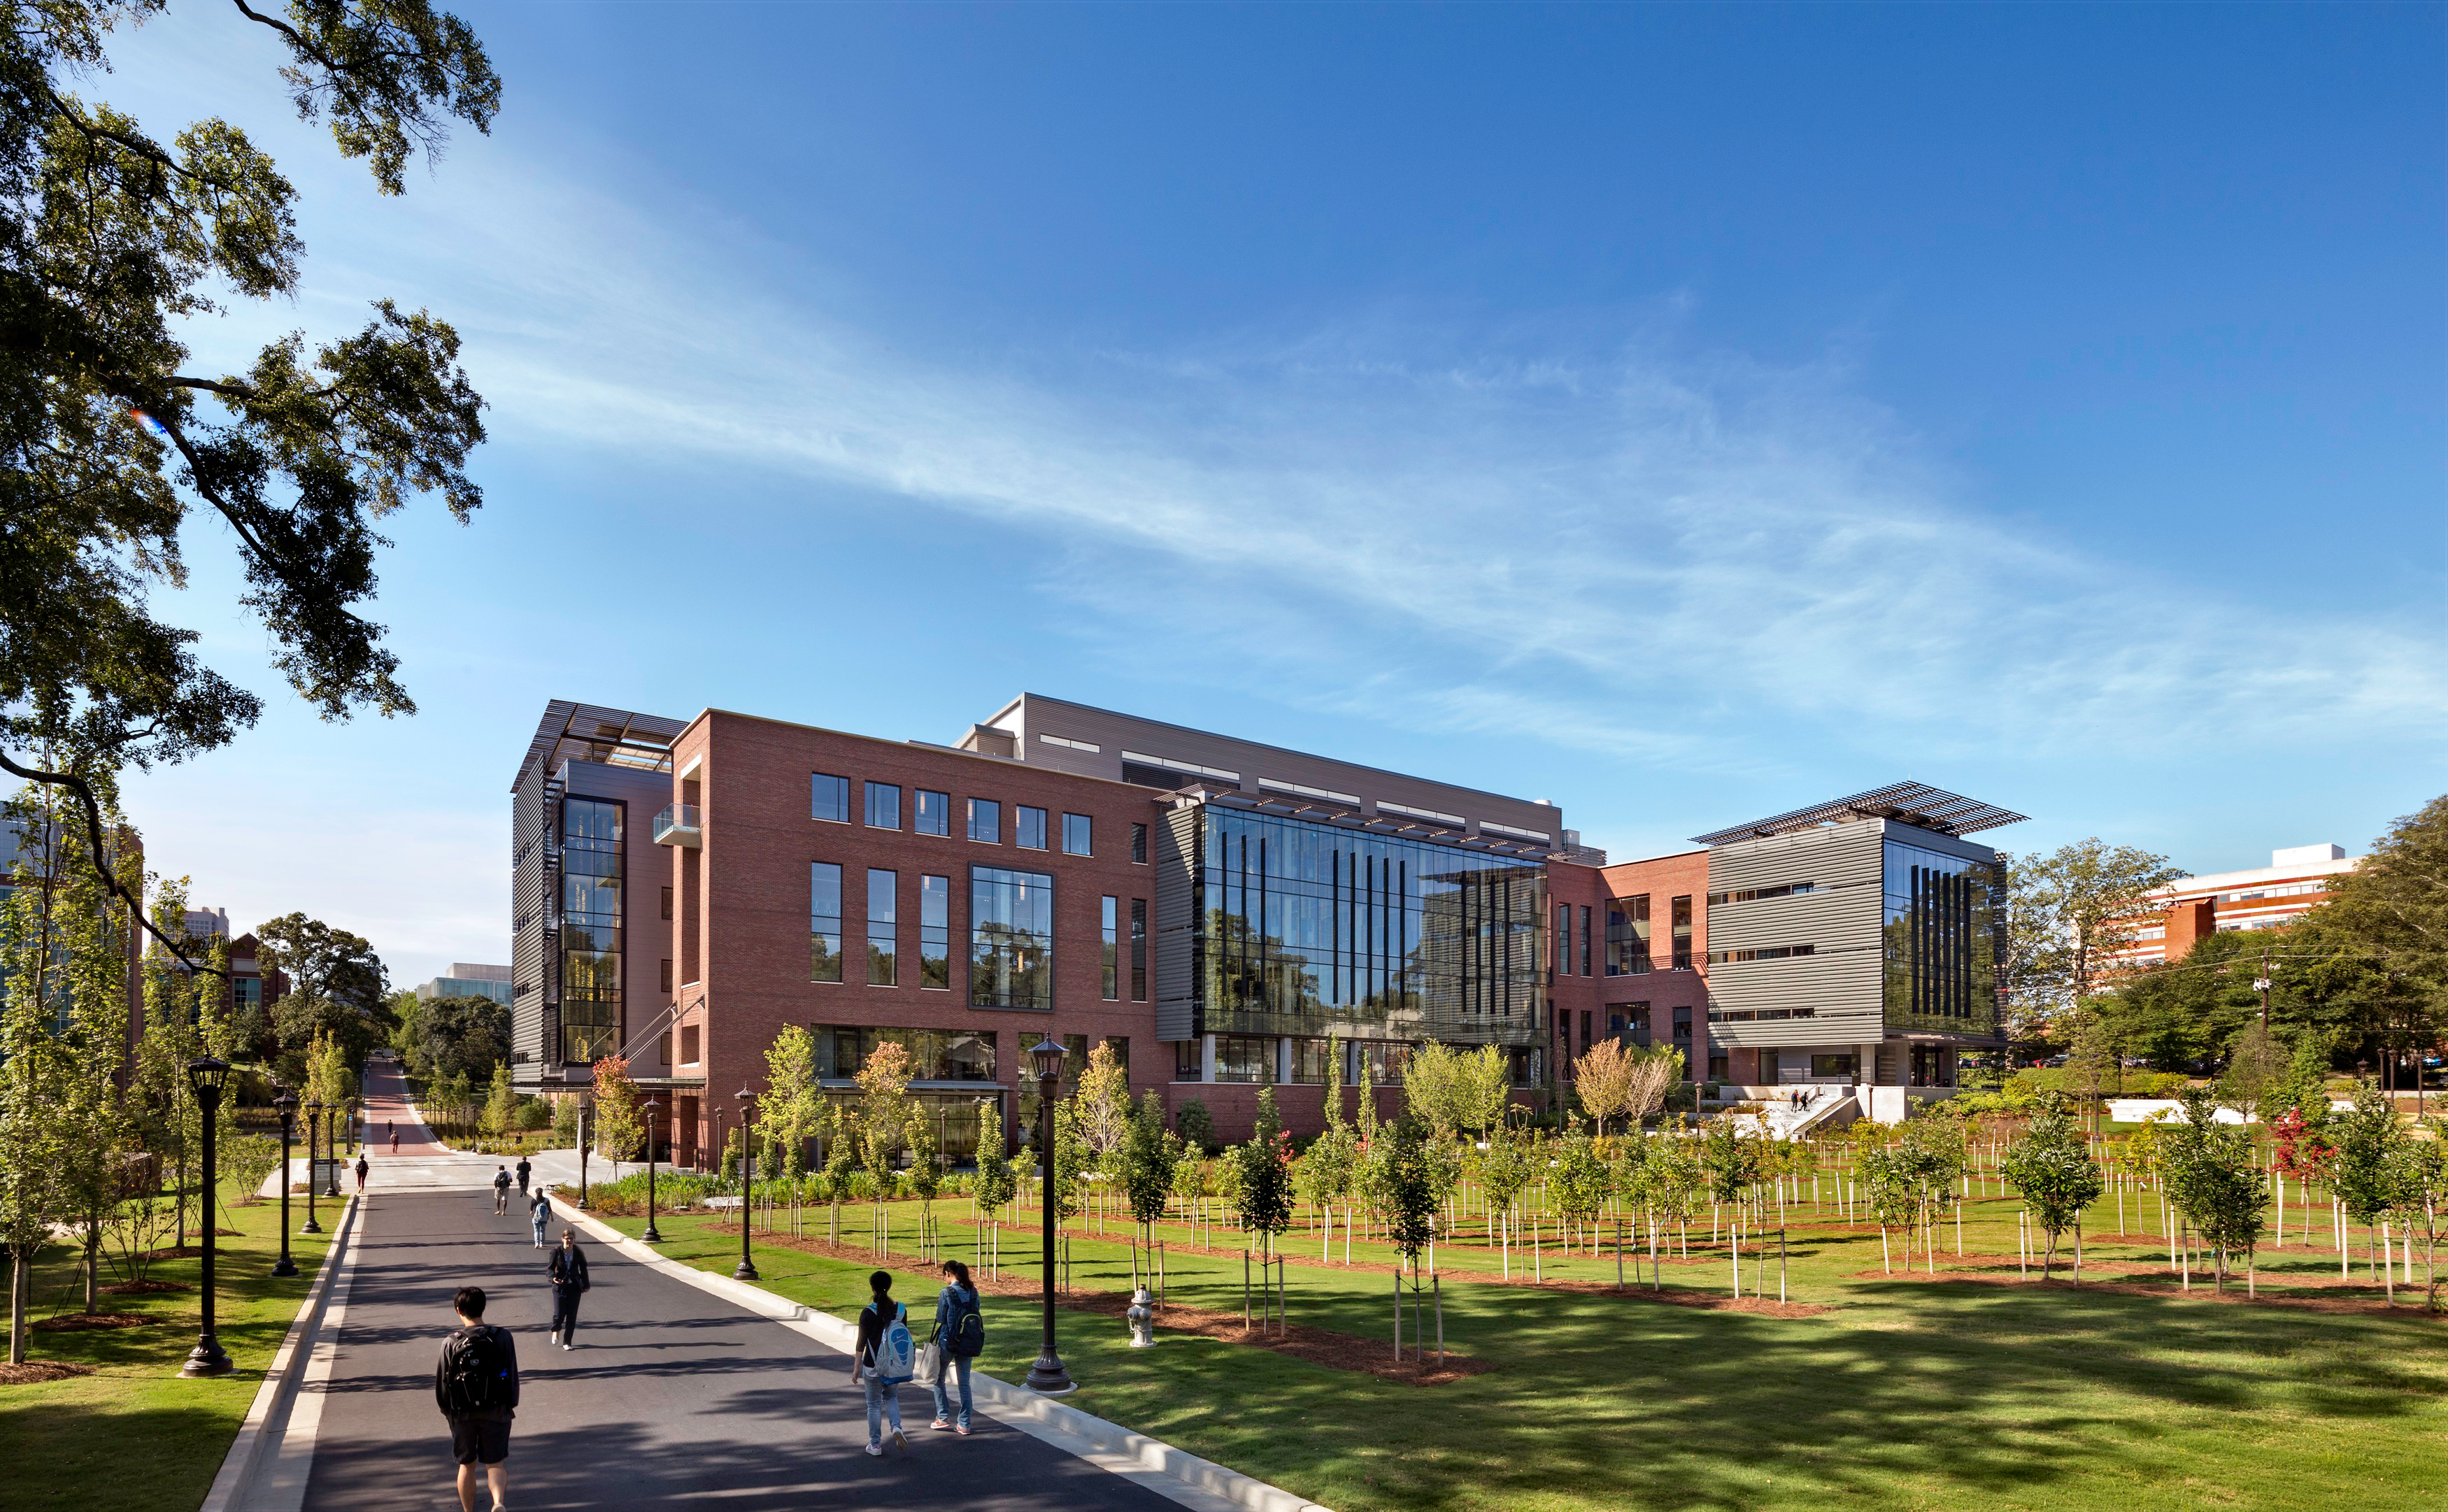 Georgia Tech Engineered Biosystems Building Lake Flato